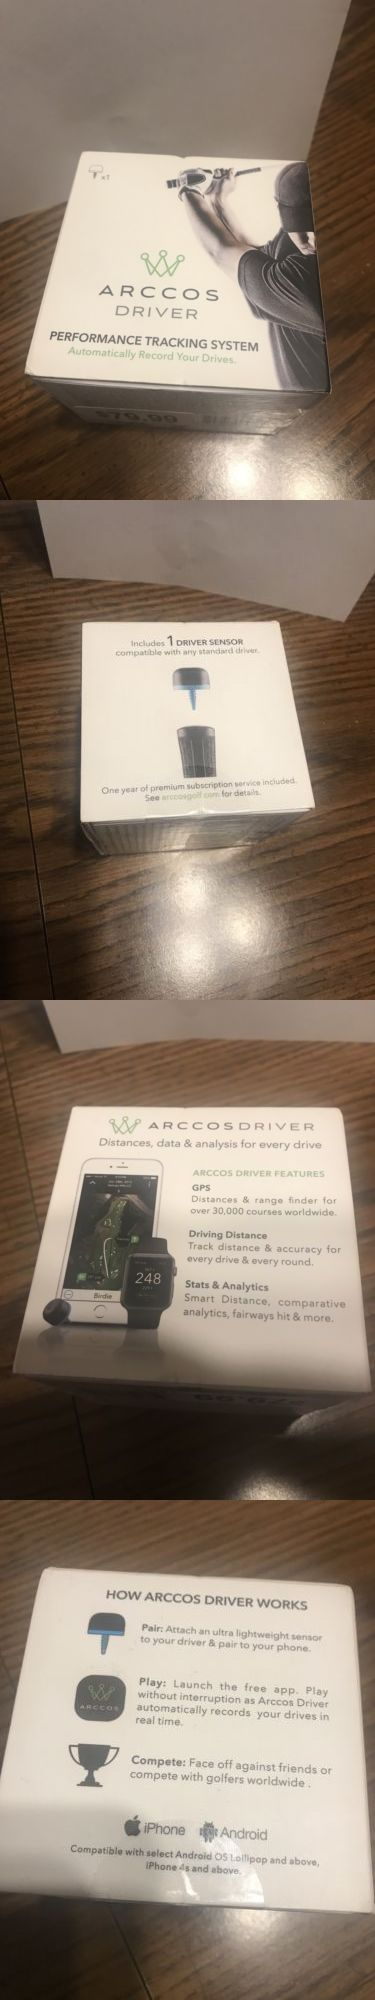 Other Golf Training Aids 14109: Arccos Driver Performance Tracking System Automatically Records Your Drives -> BUY IT NOW ONLY: $33.99 on eBay!